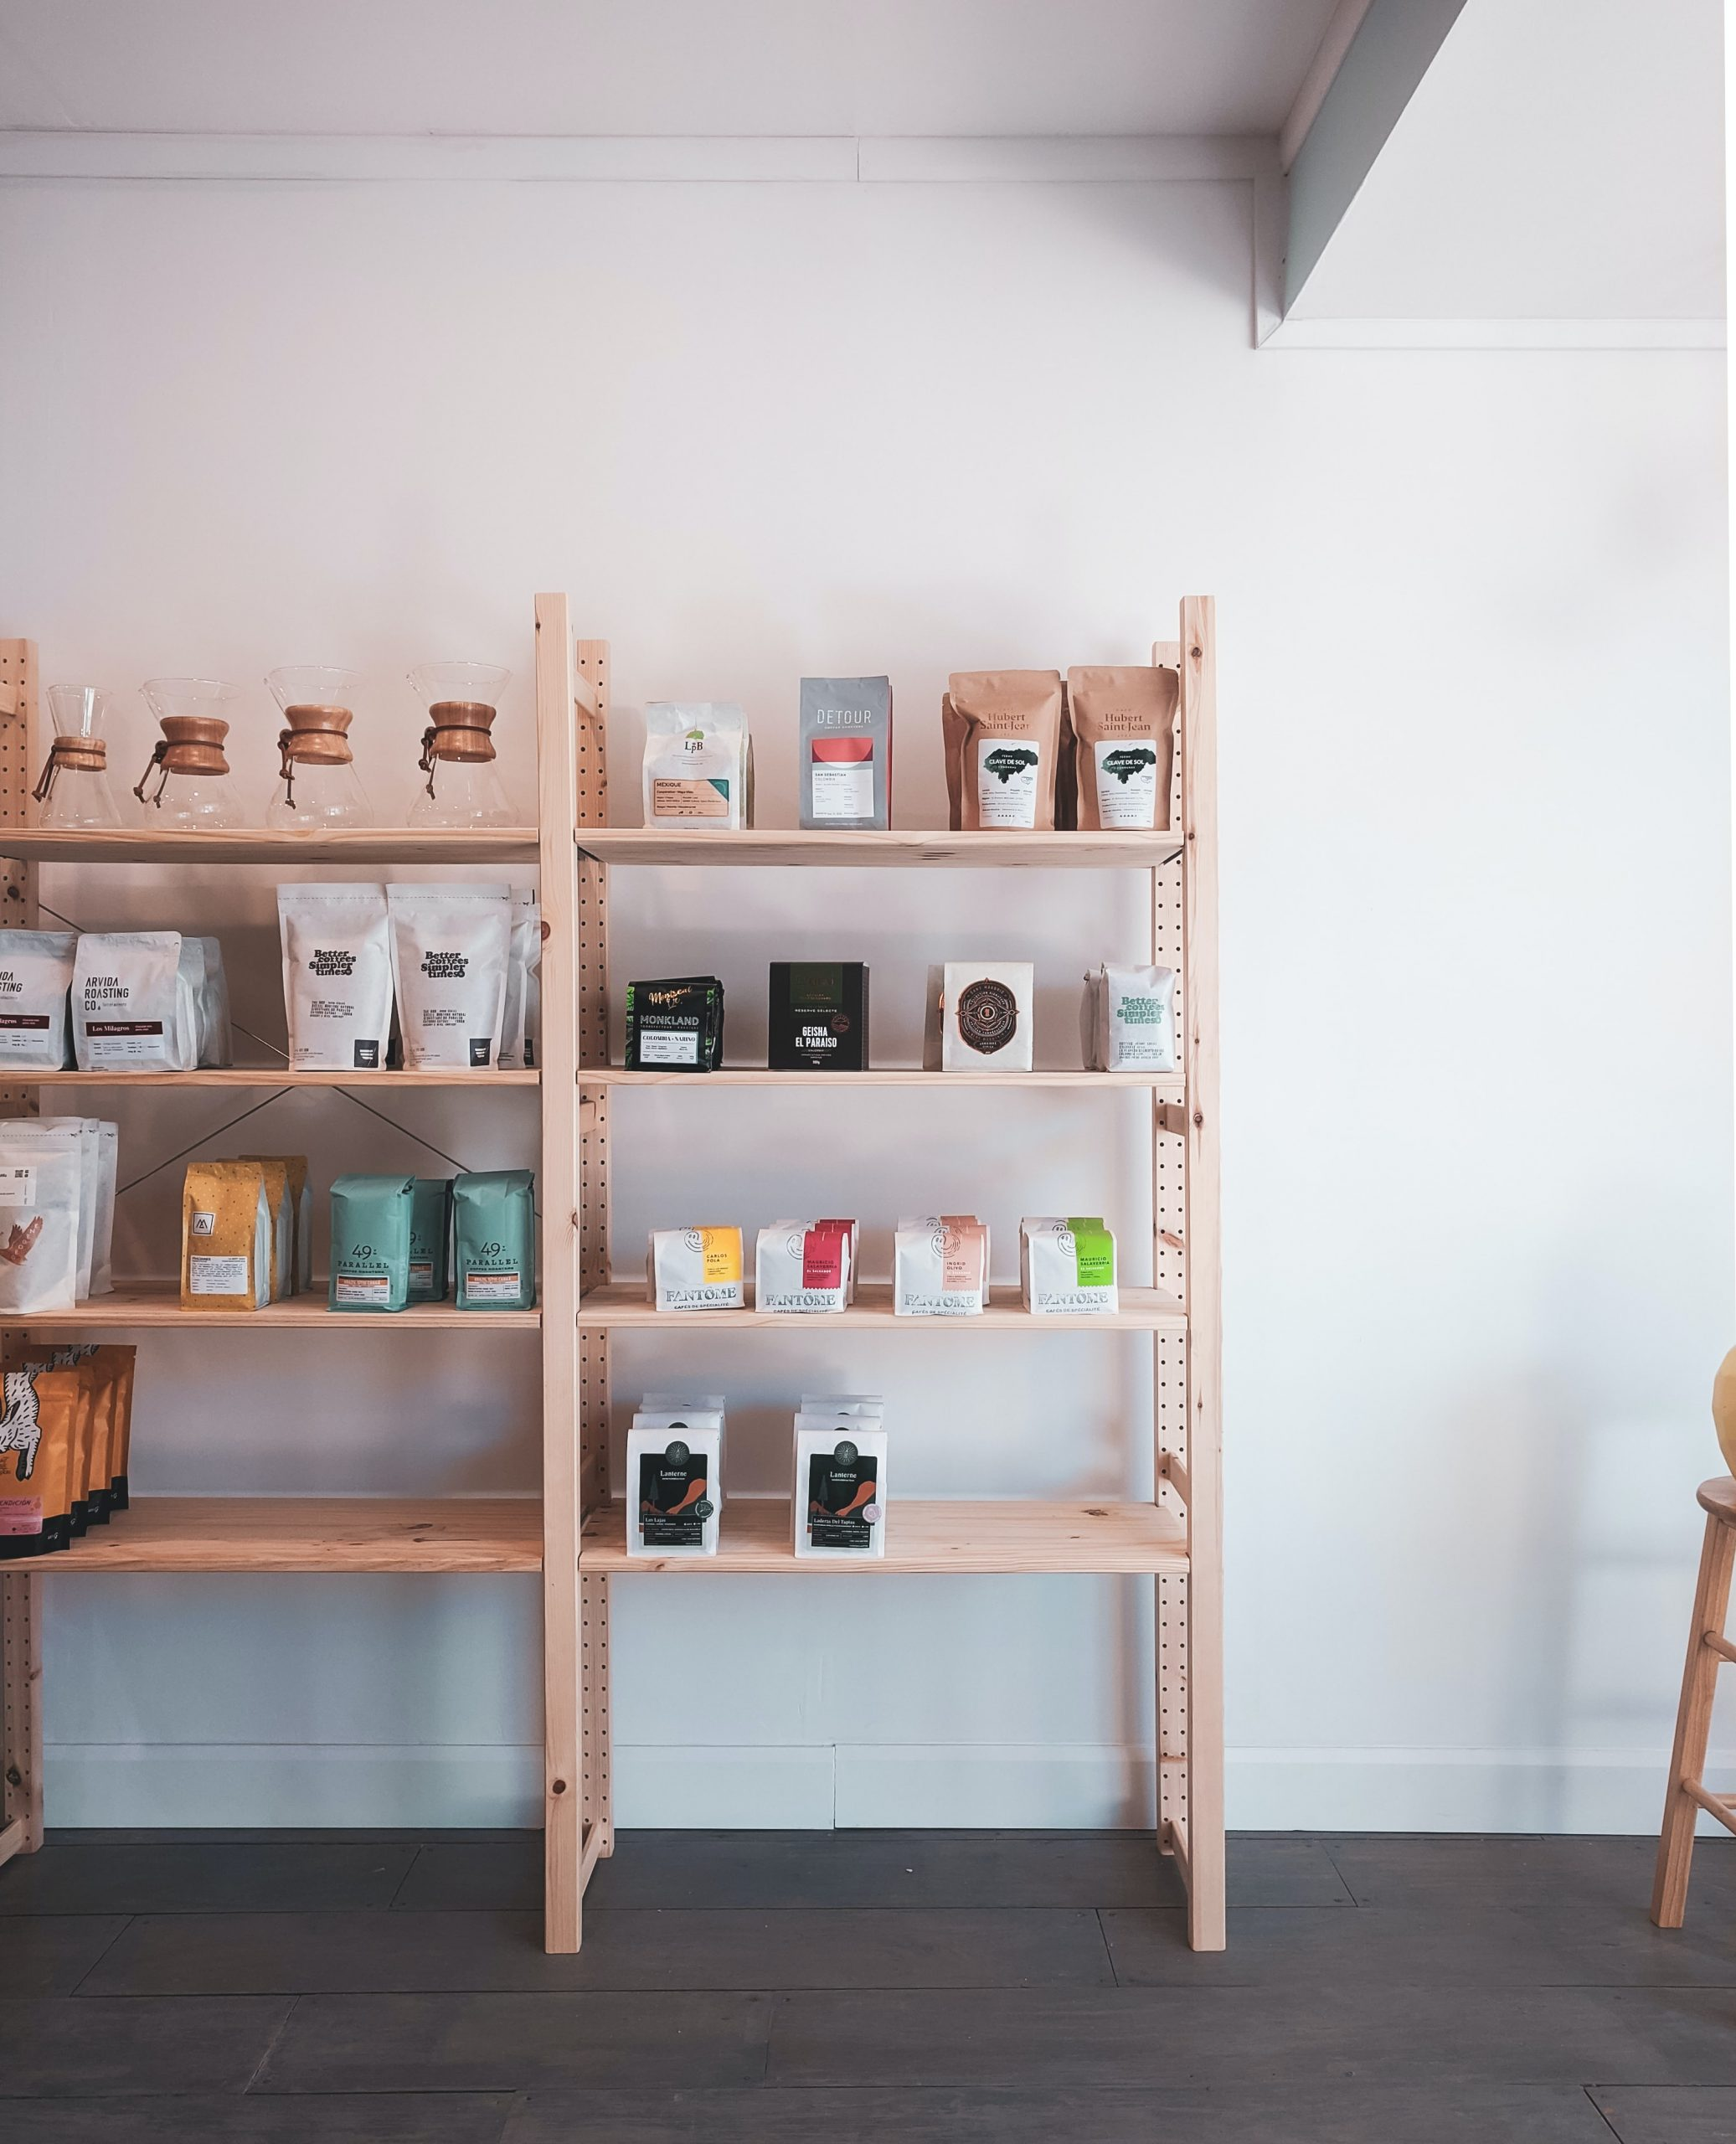 Excellent Tips on How to Display Items on Shelves